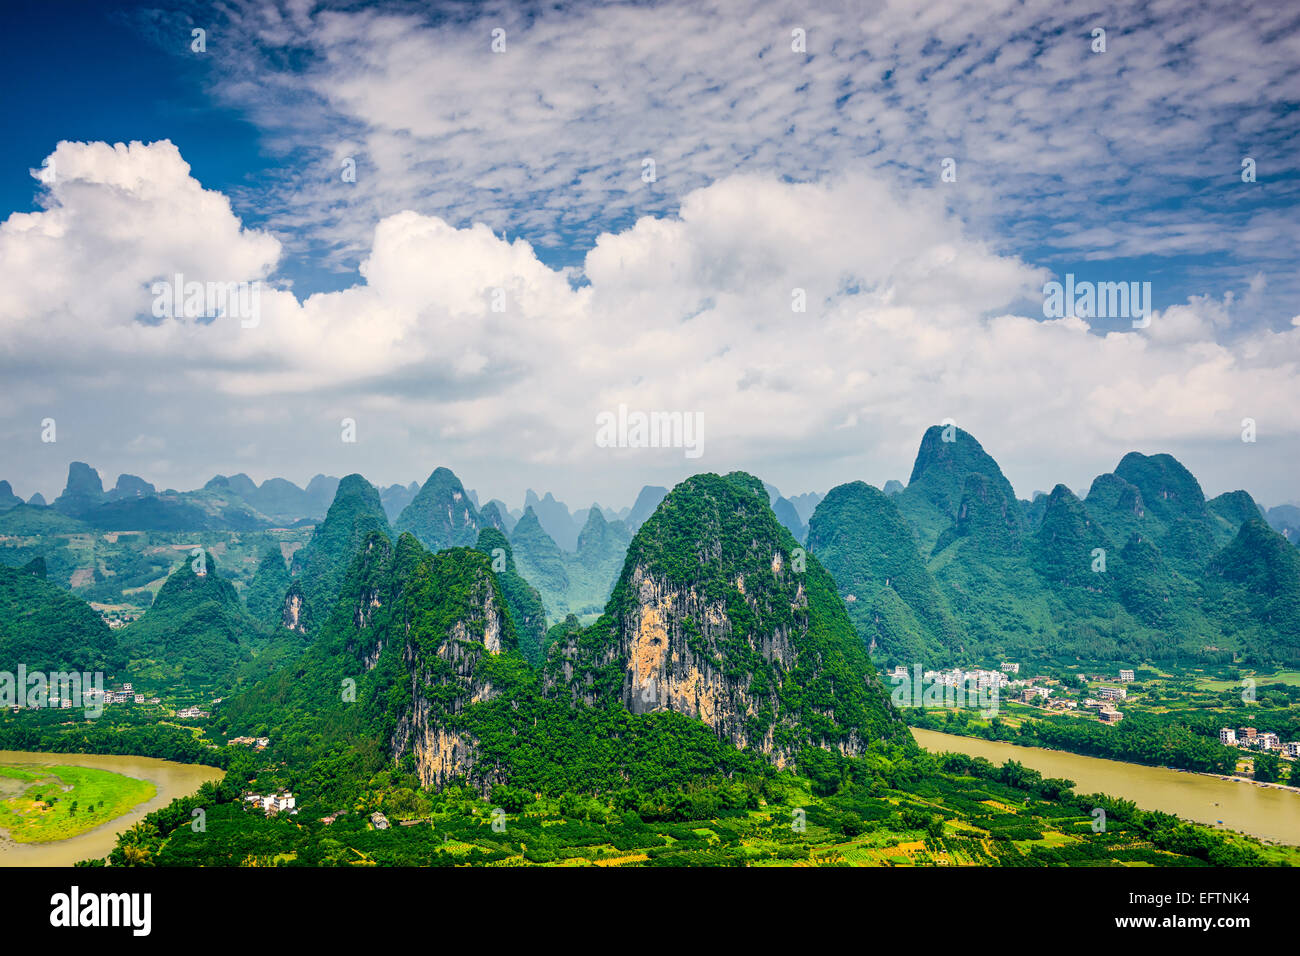 Karst mountain landscape in Xingping, Guangxi Province, China. Stock Photo